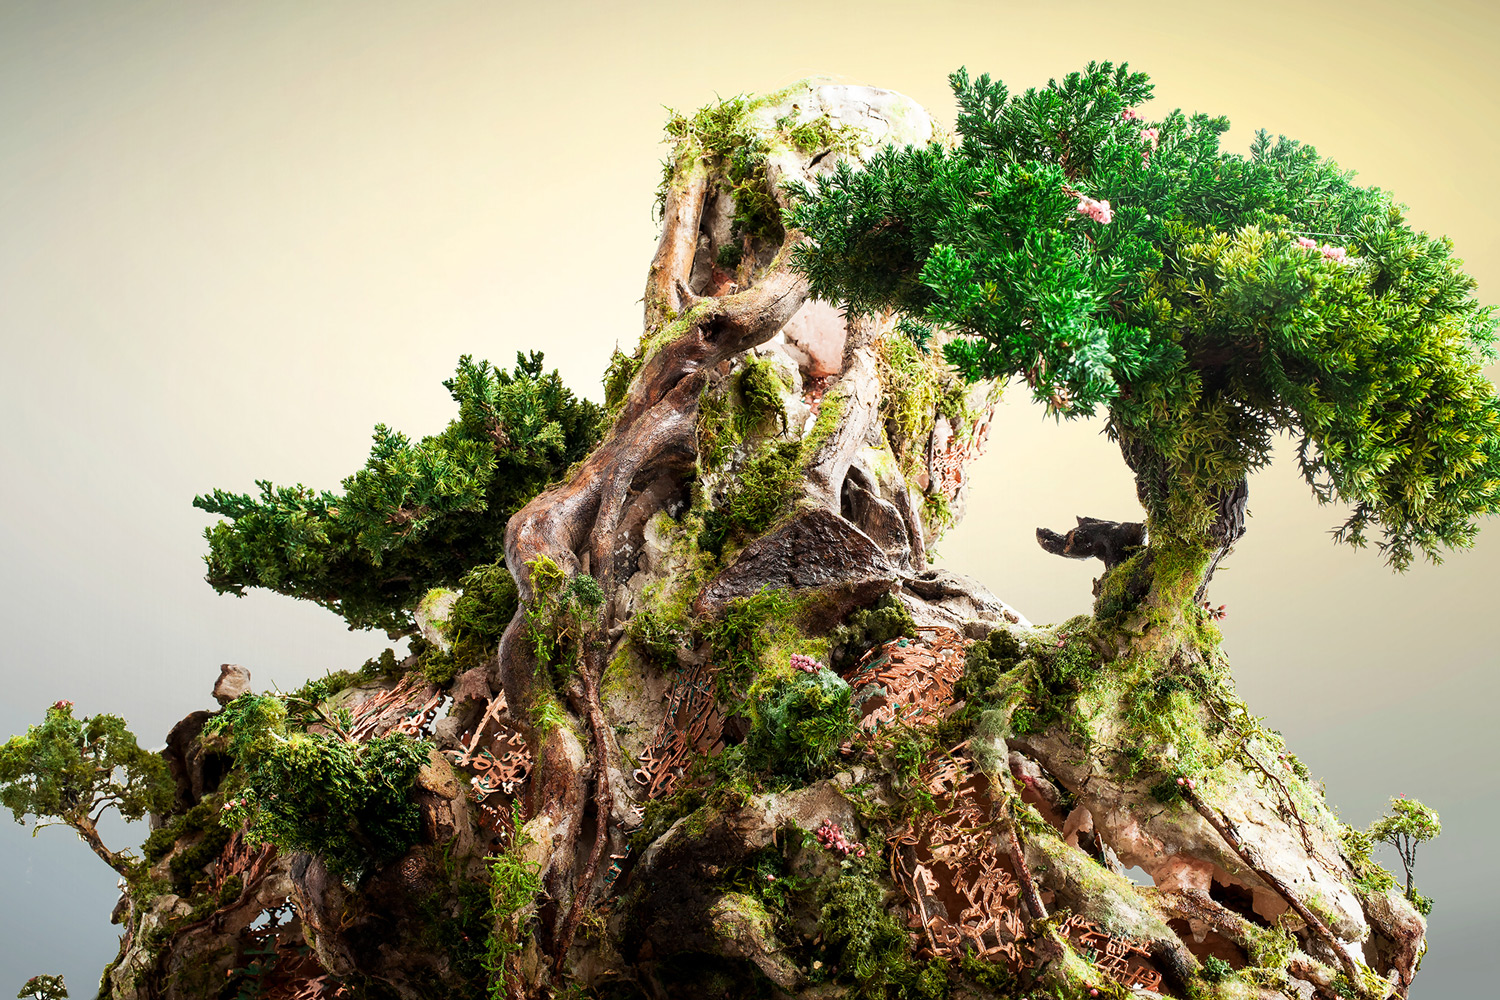 A Tree-Like Figure Composed of Natural and Technological Elements by Garret Kane